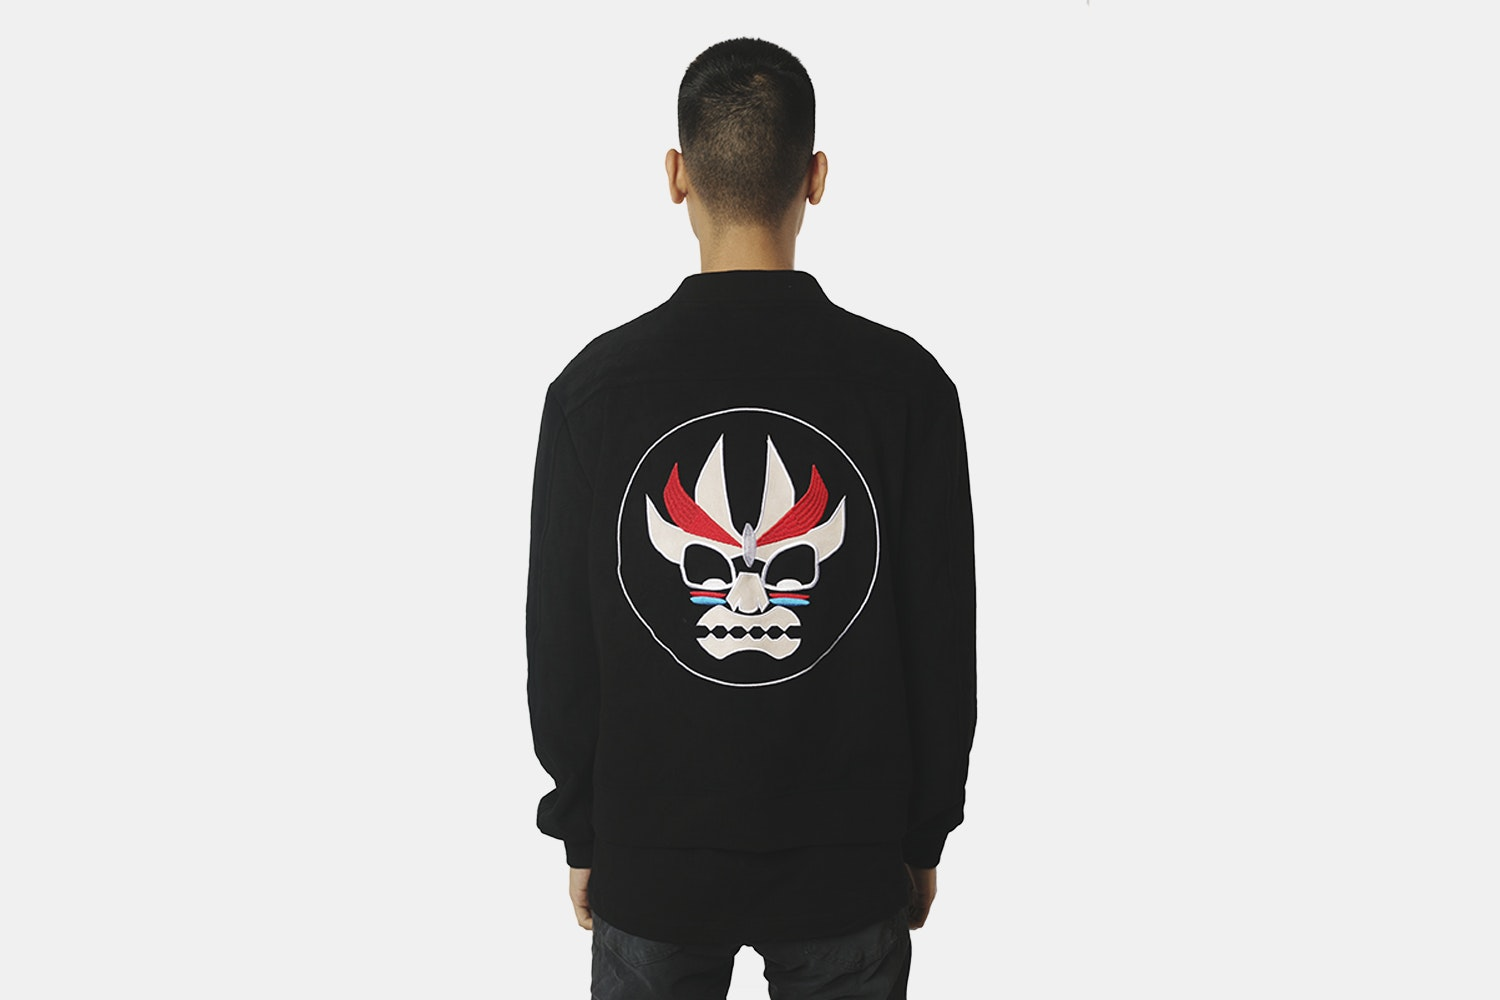 Aku Bomber Jacket  (with back embroidery) - Black (+ $20)